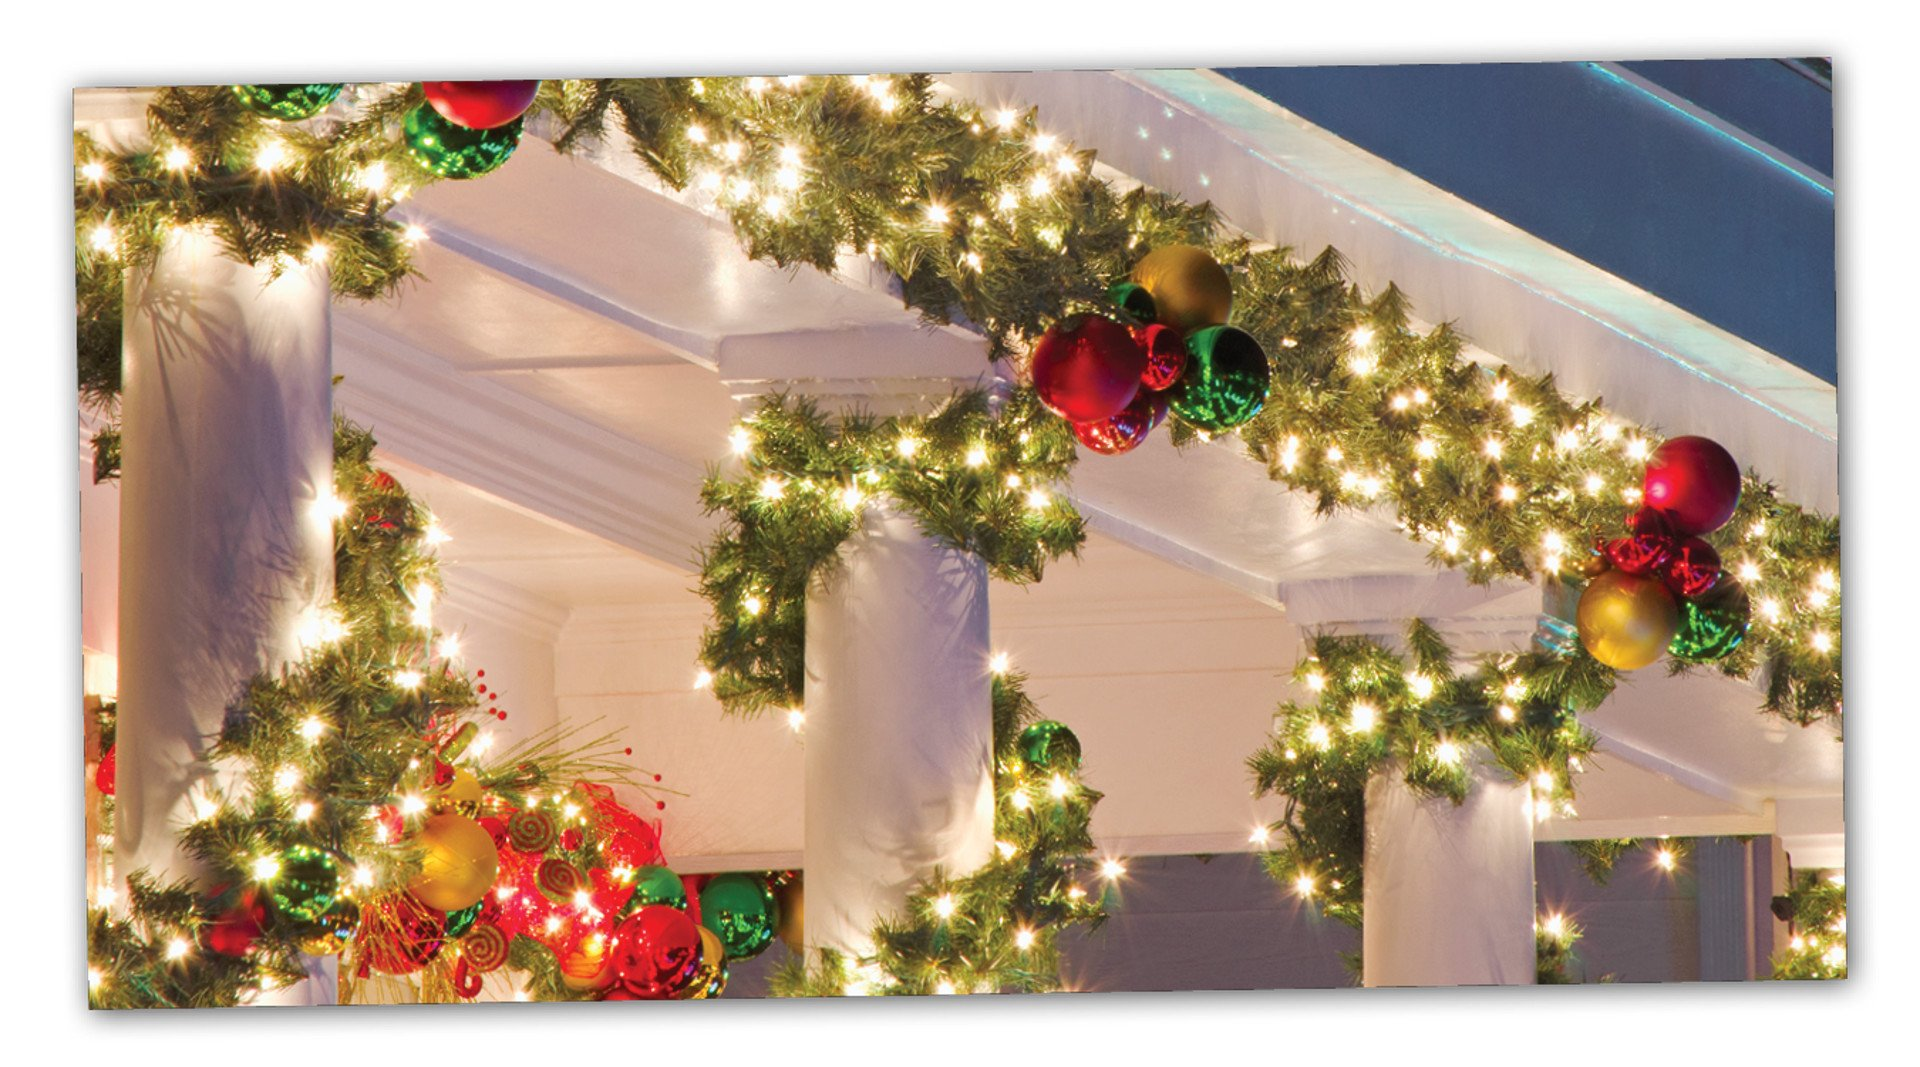 Garland with white lights